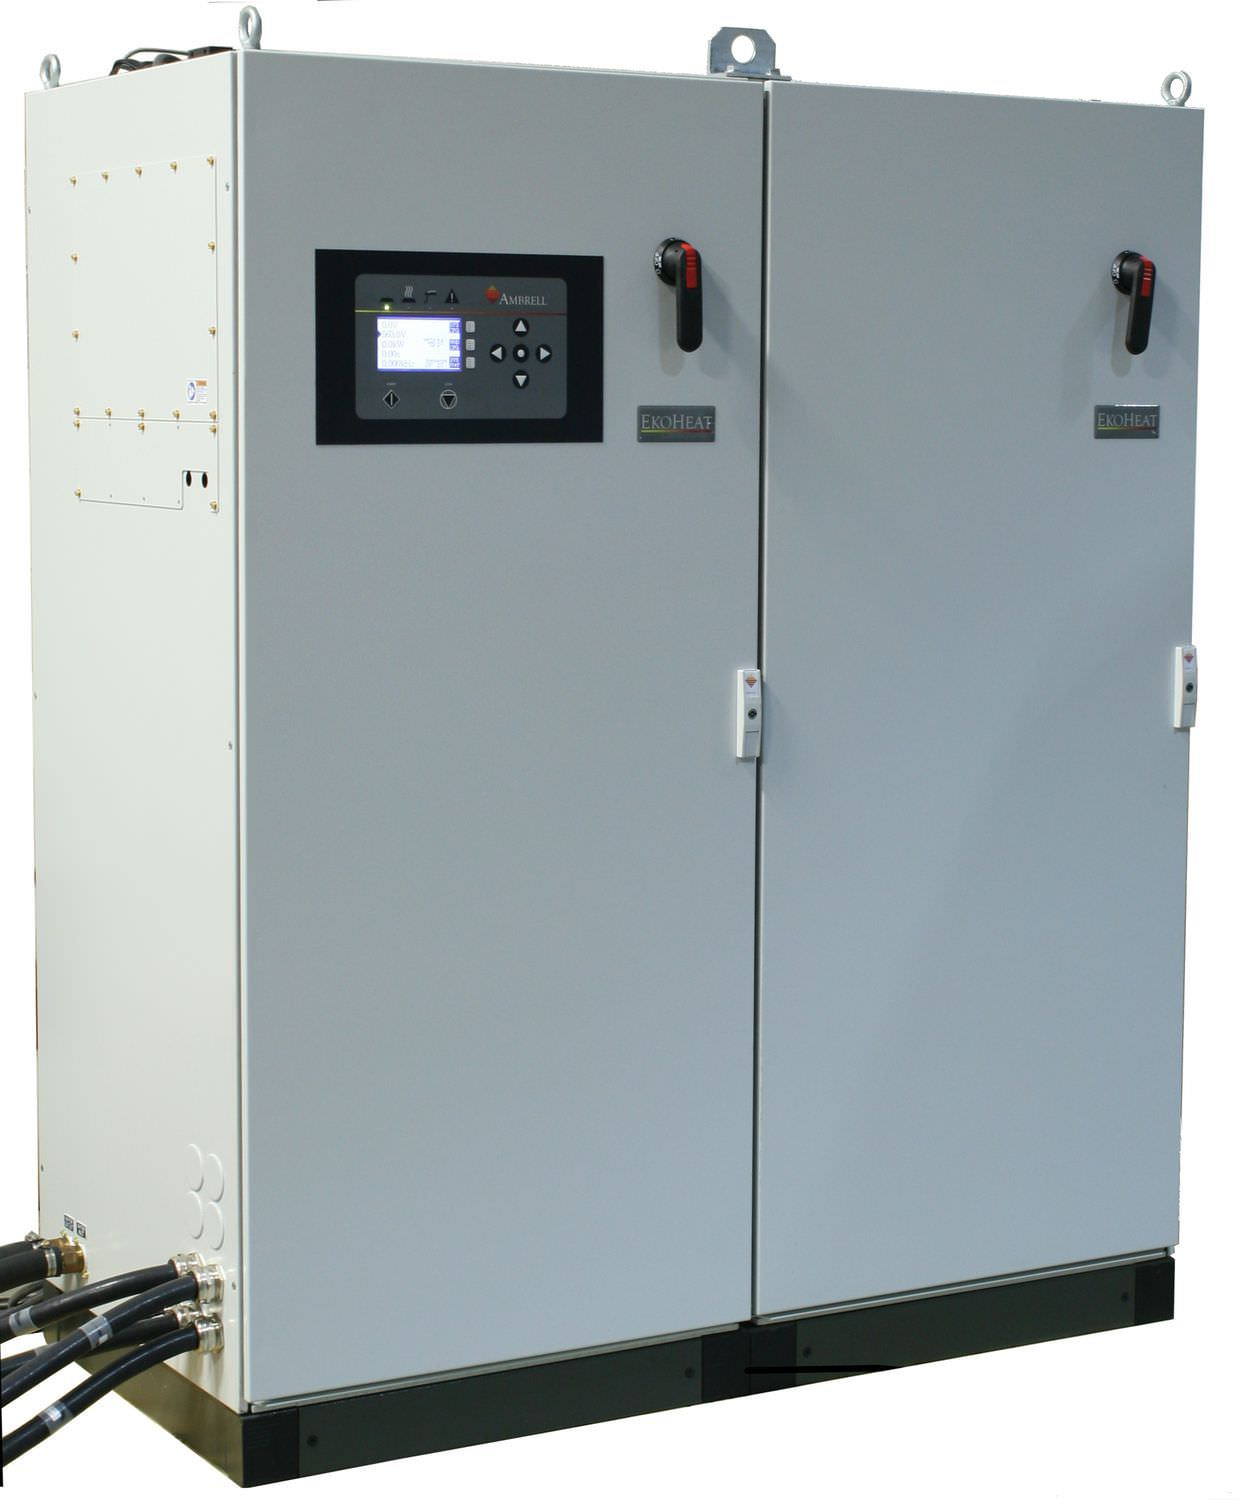 EKOHEAT 375/3 Induction heater 375 kW, 2 – 5 kHz